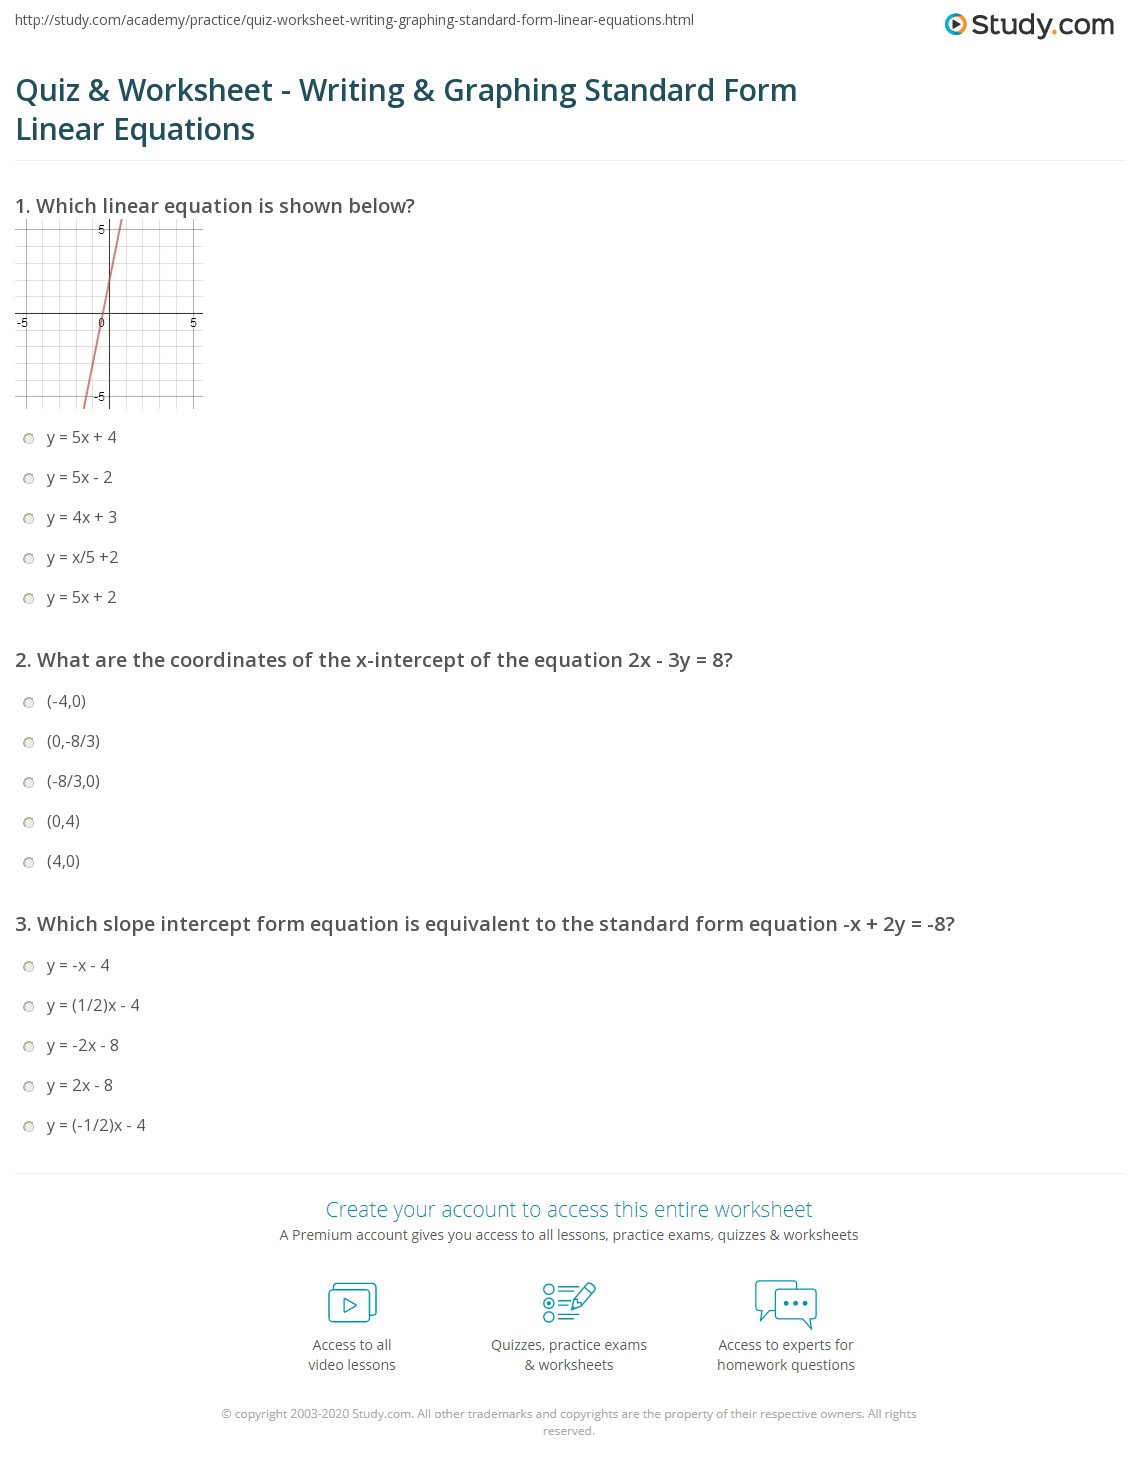 Quiz Worksheet Writing Graphing Standard Form Linear – Writing Linear Equations Worksheet